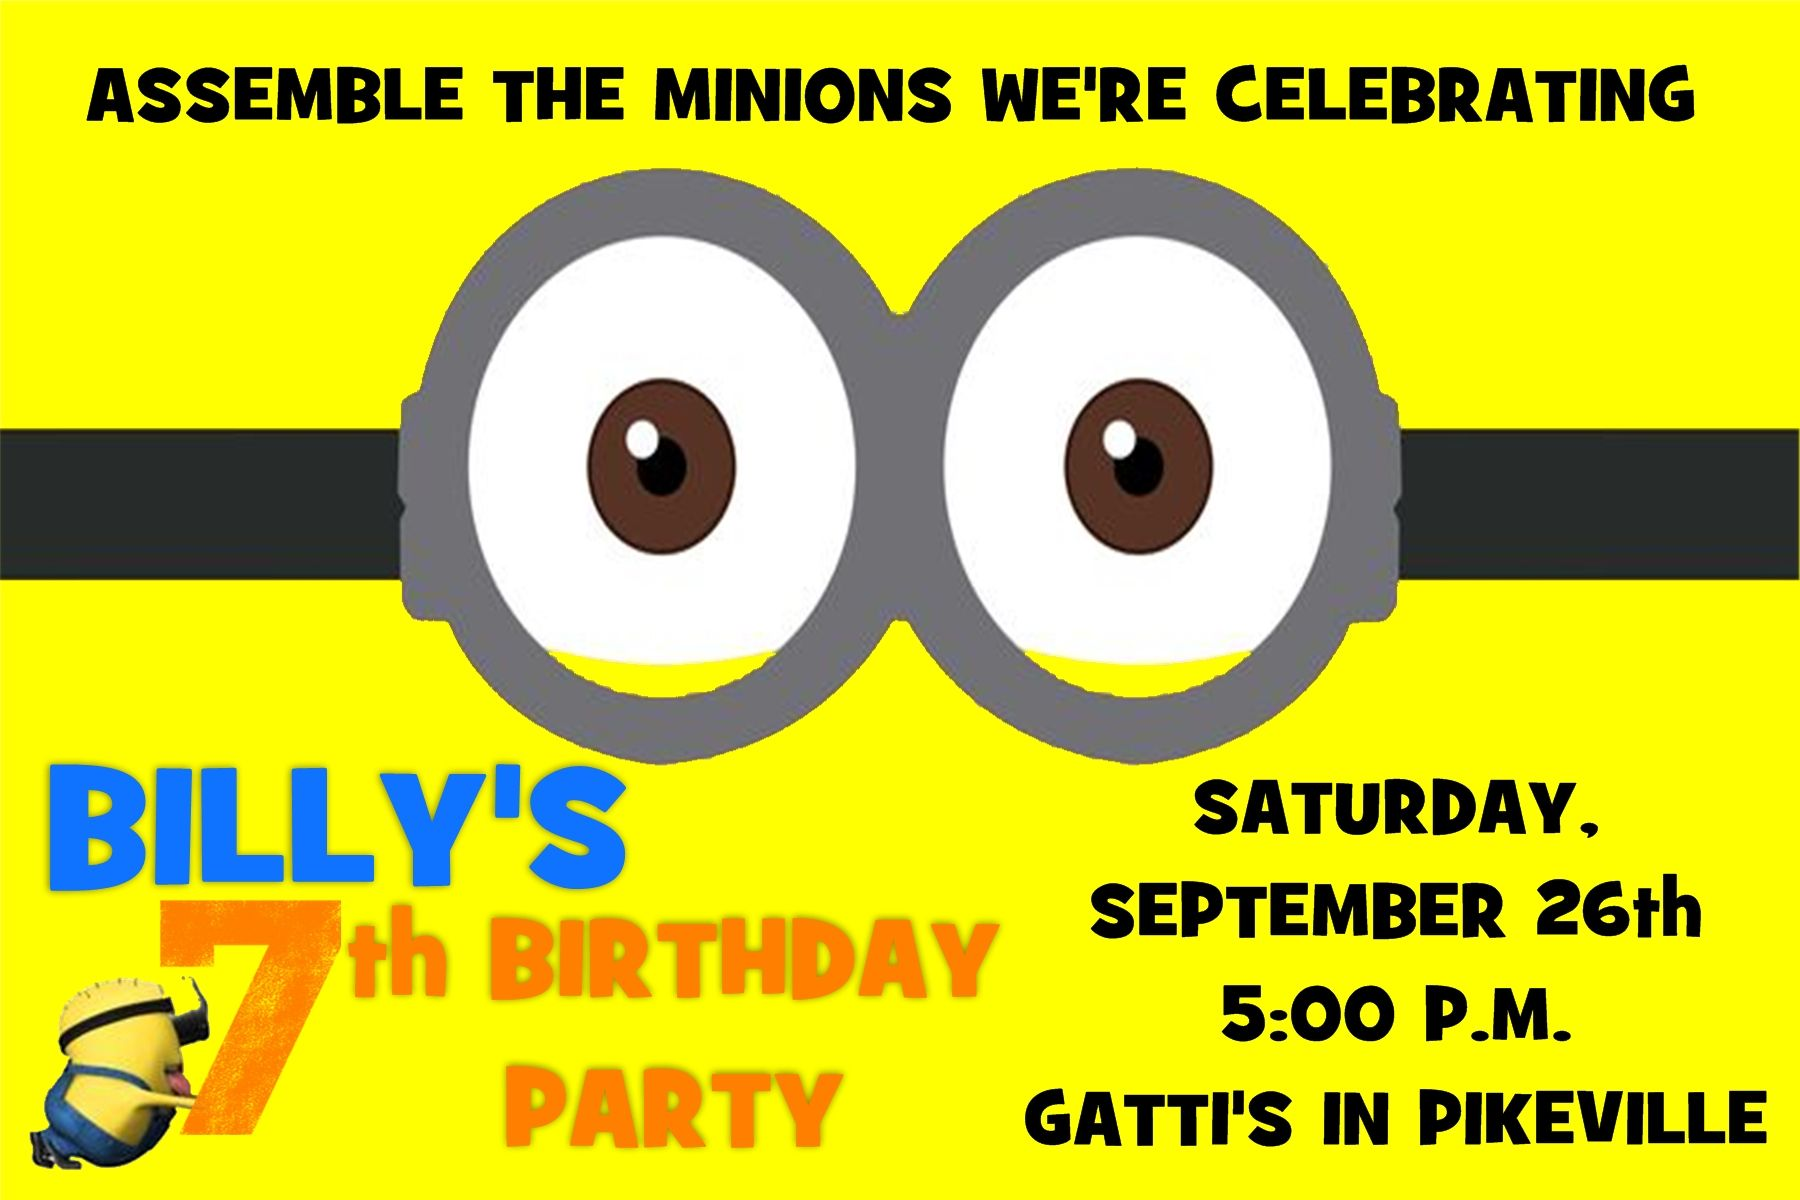 4x6 Minion (Despicable Me) Birthday Invitation  Contact me via email at aswiney01@yahoo.com or click on the image to message me via my facebook page.  I can design this or any other invitation for only $10.